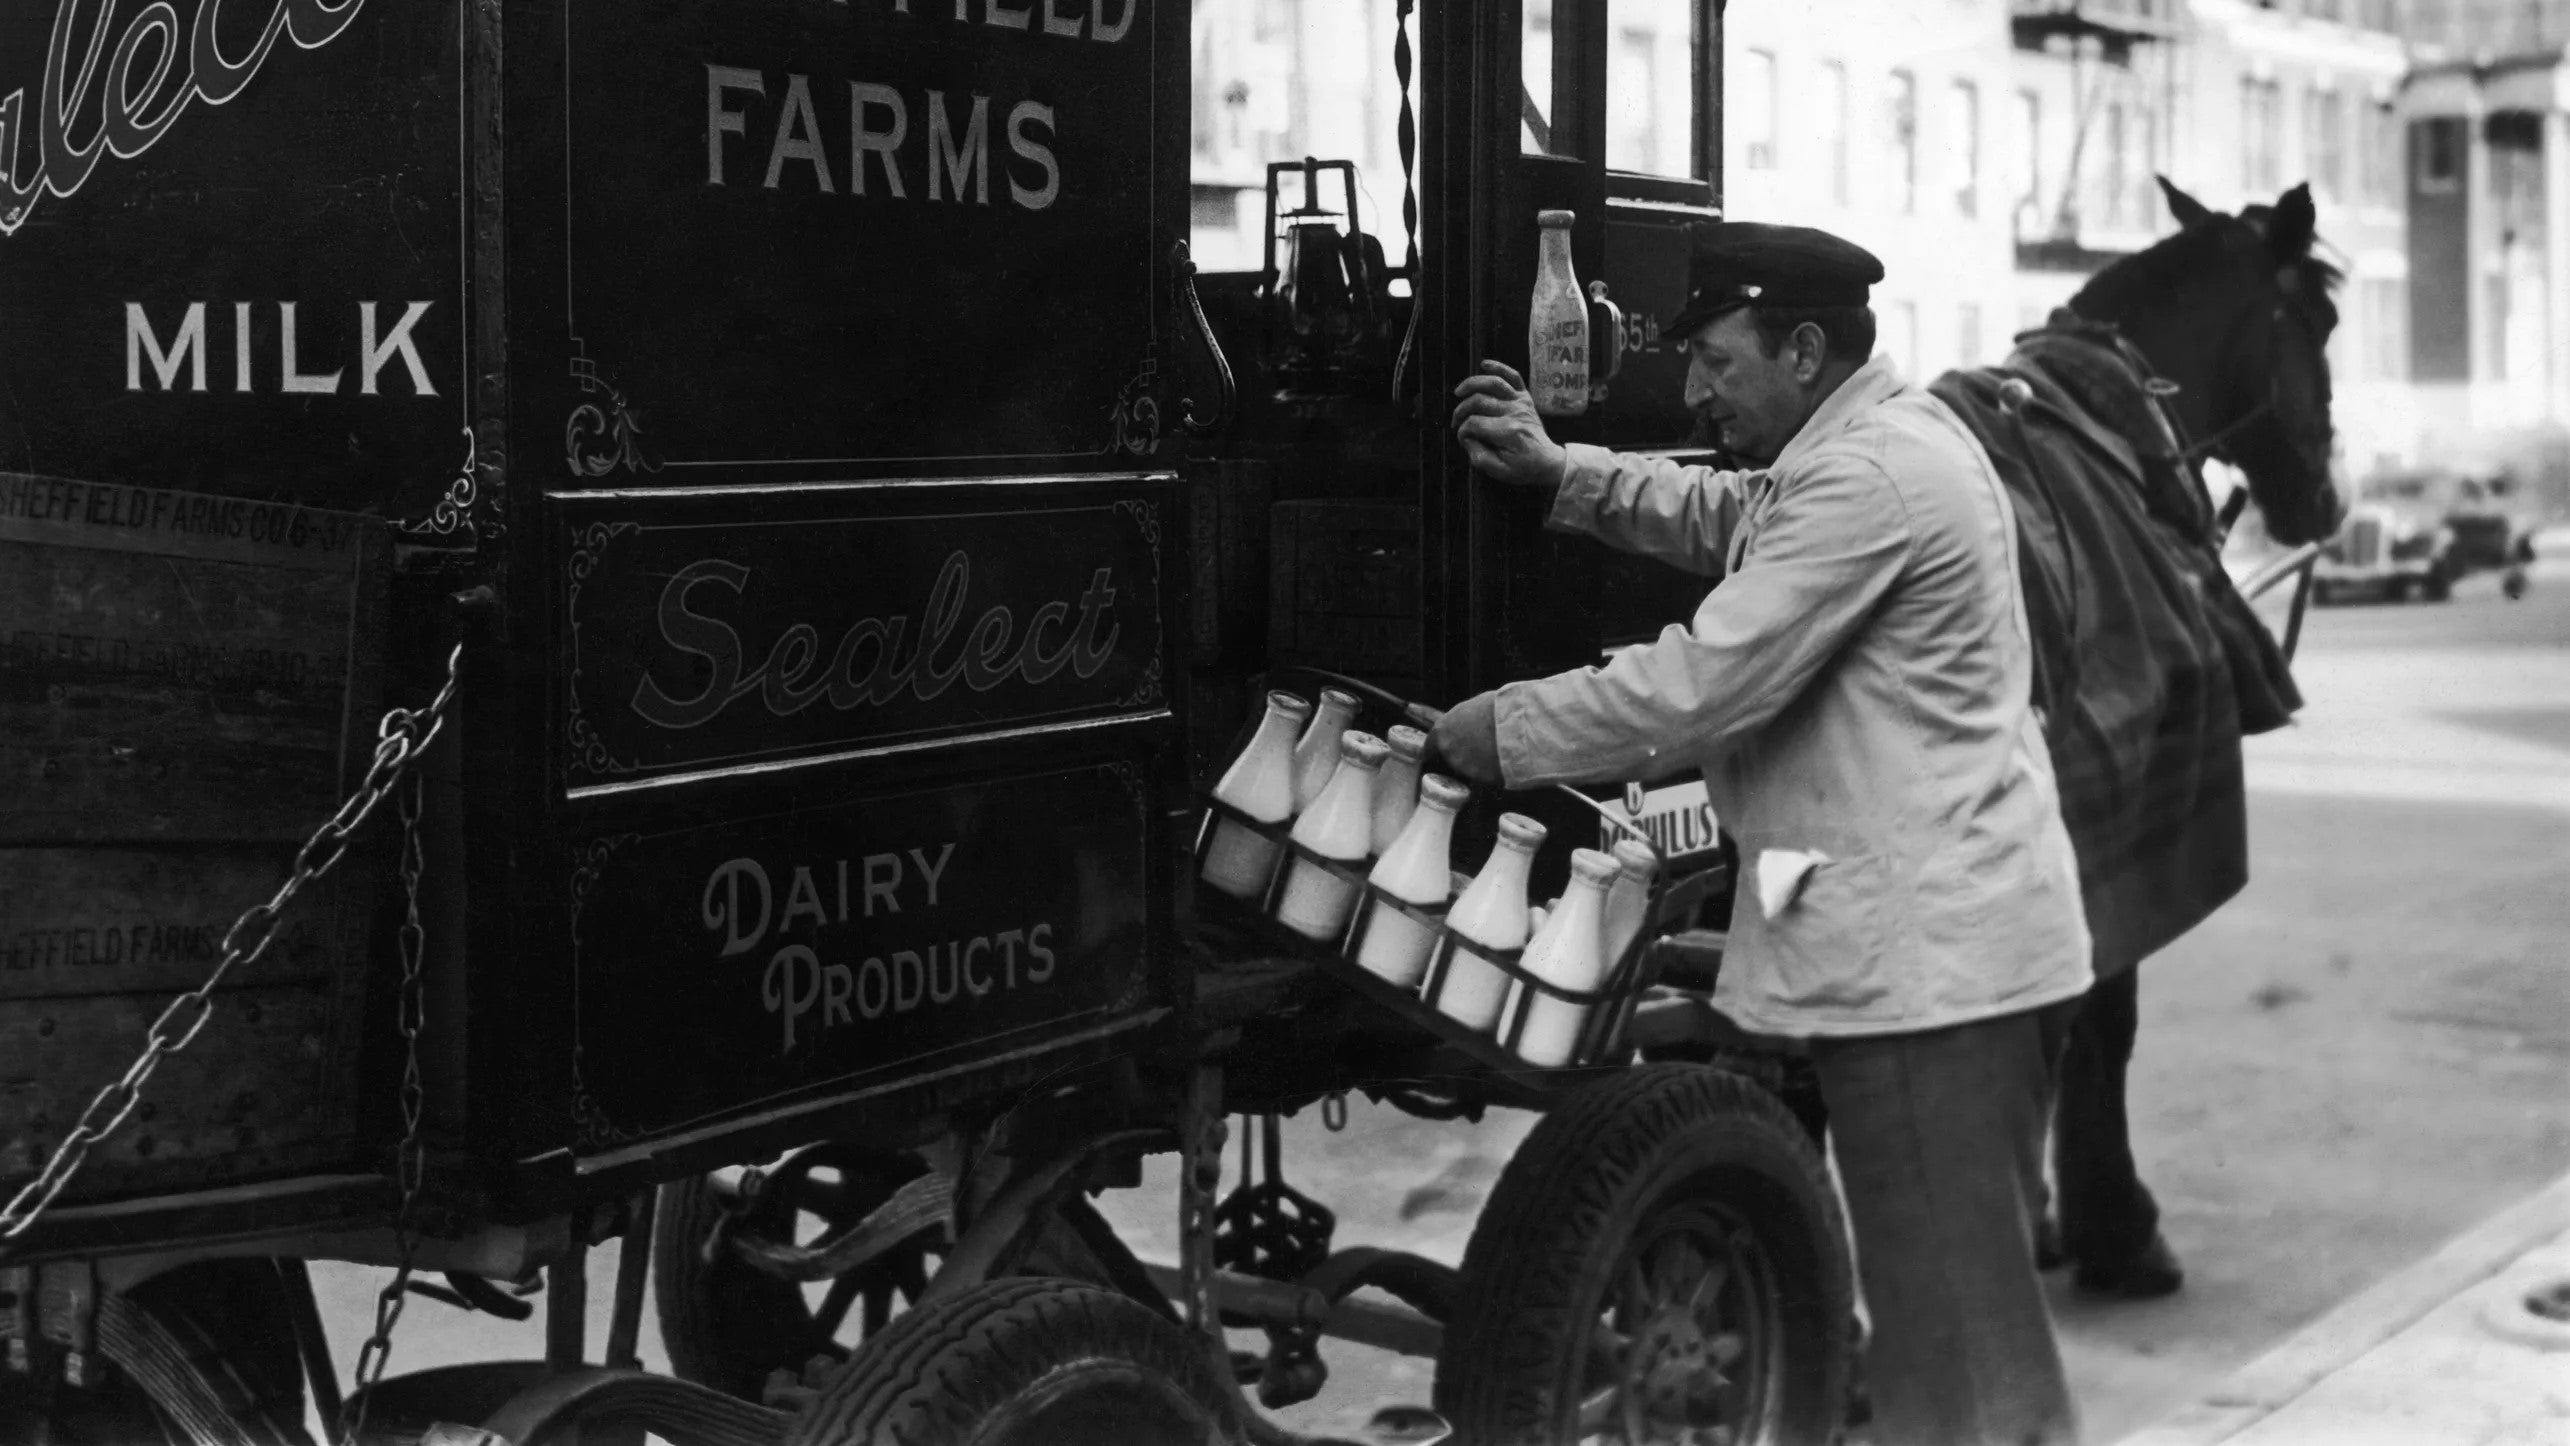 How things used to be - Milkman